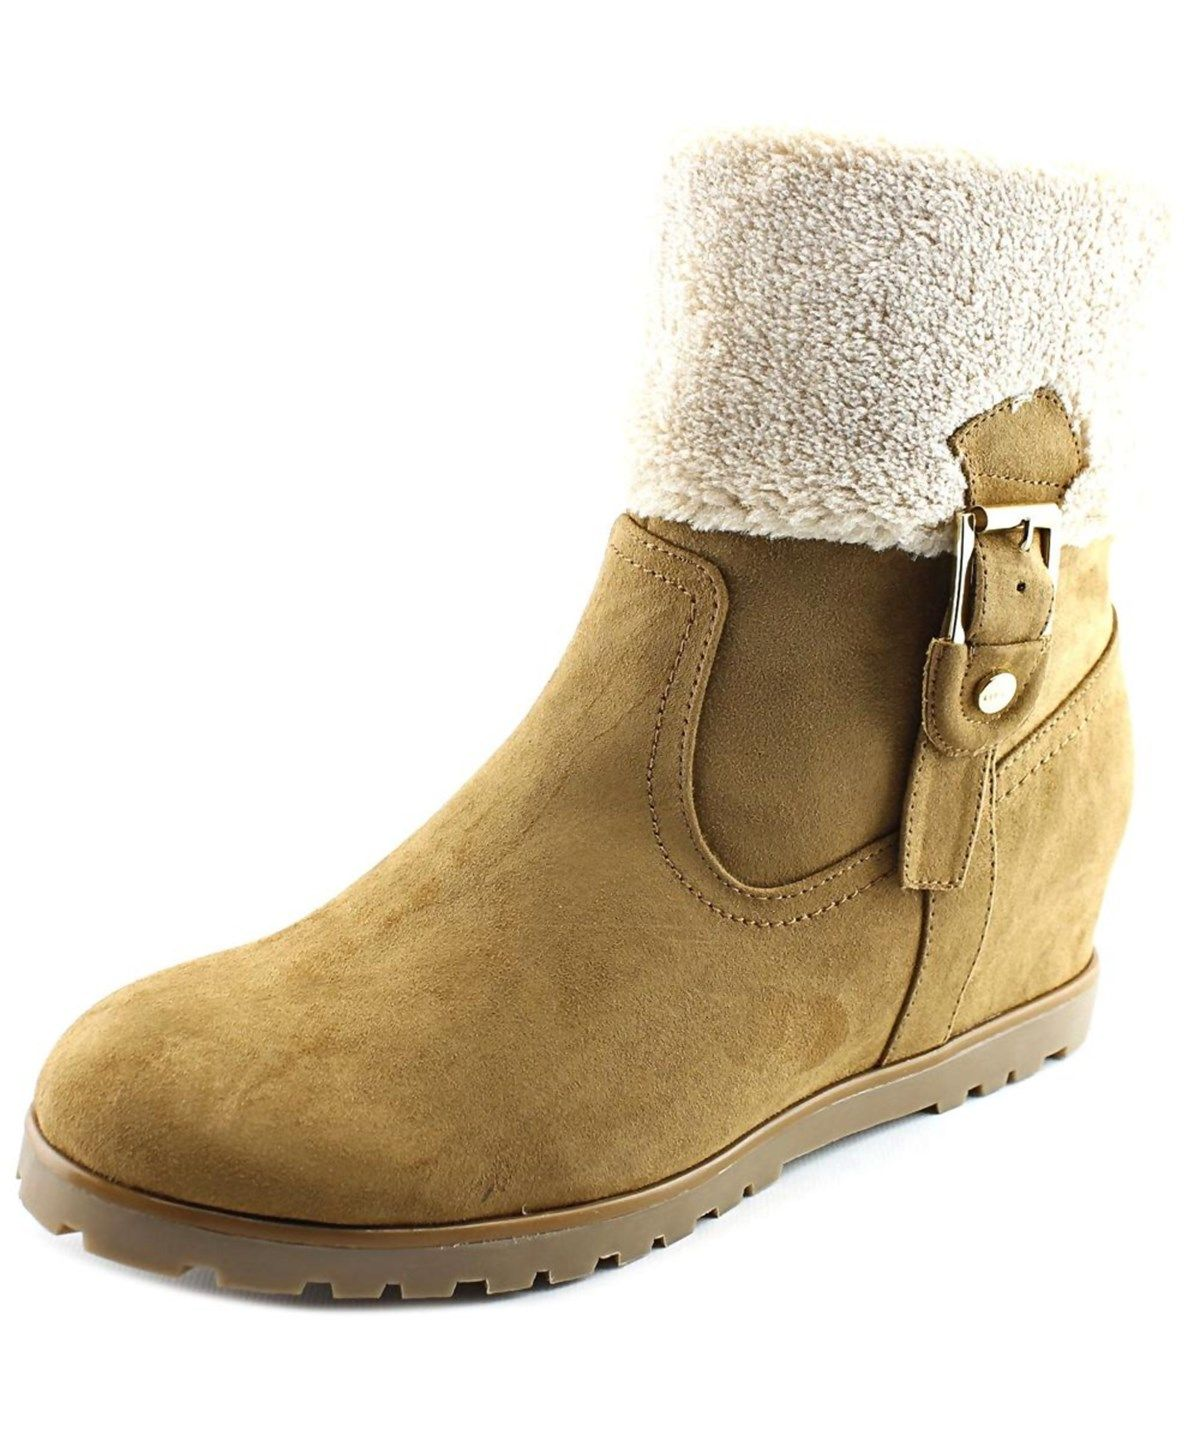 TOMMY HILFIGER TOMMY HILFIGER SOFFIA 2 WOMEN  ROUND TOE SUEDE TAN MID CALF BOOT'. #tommyhilfiger #shoes #boots & booties